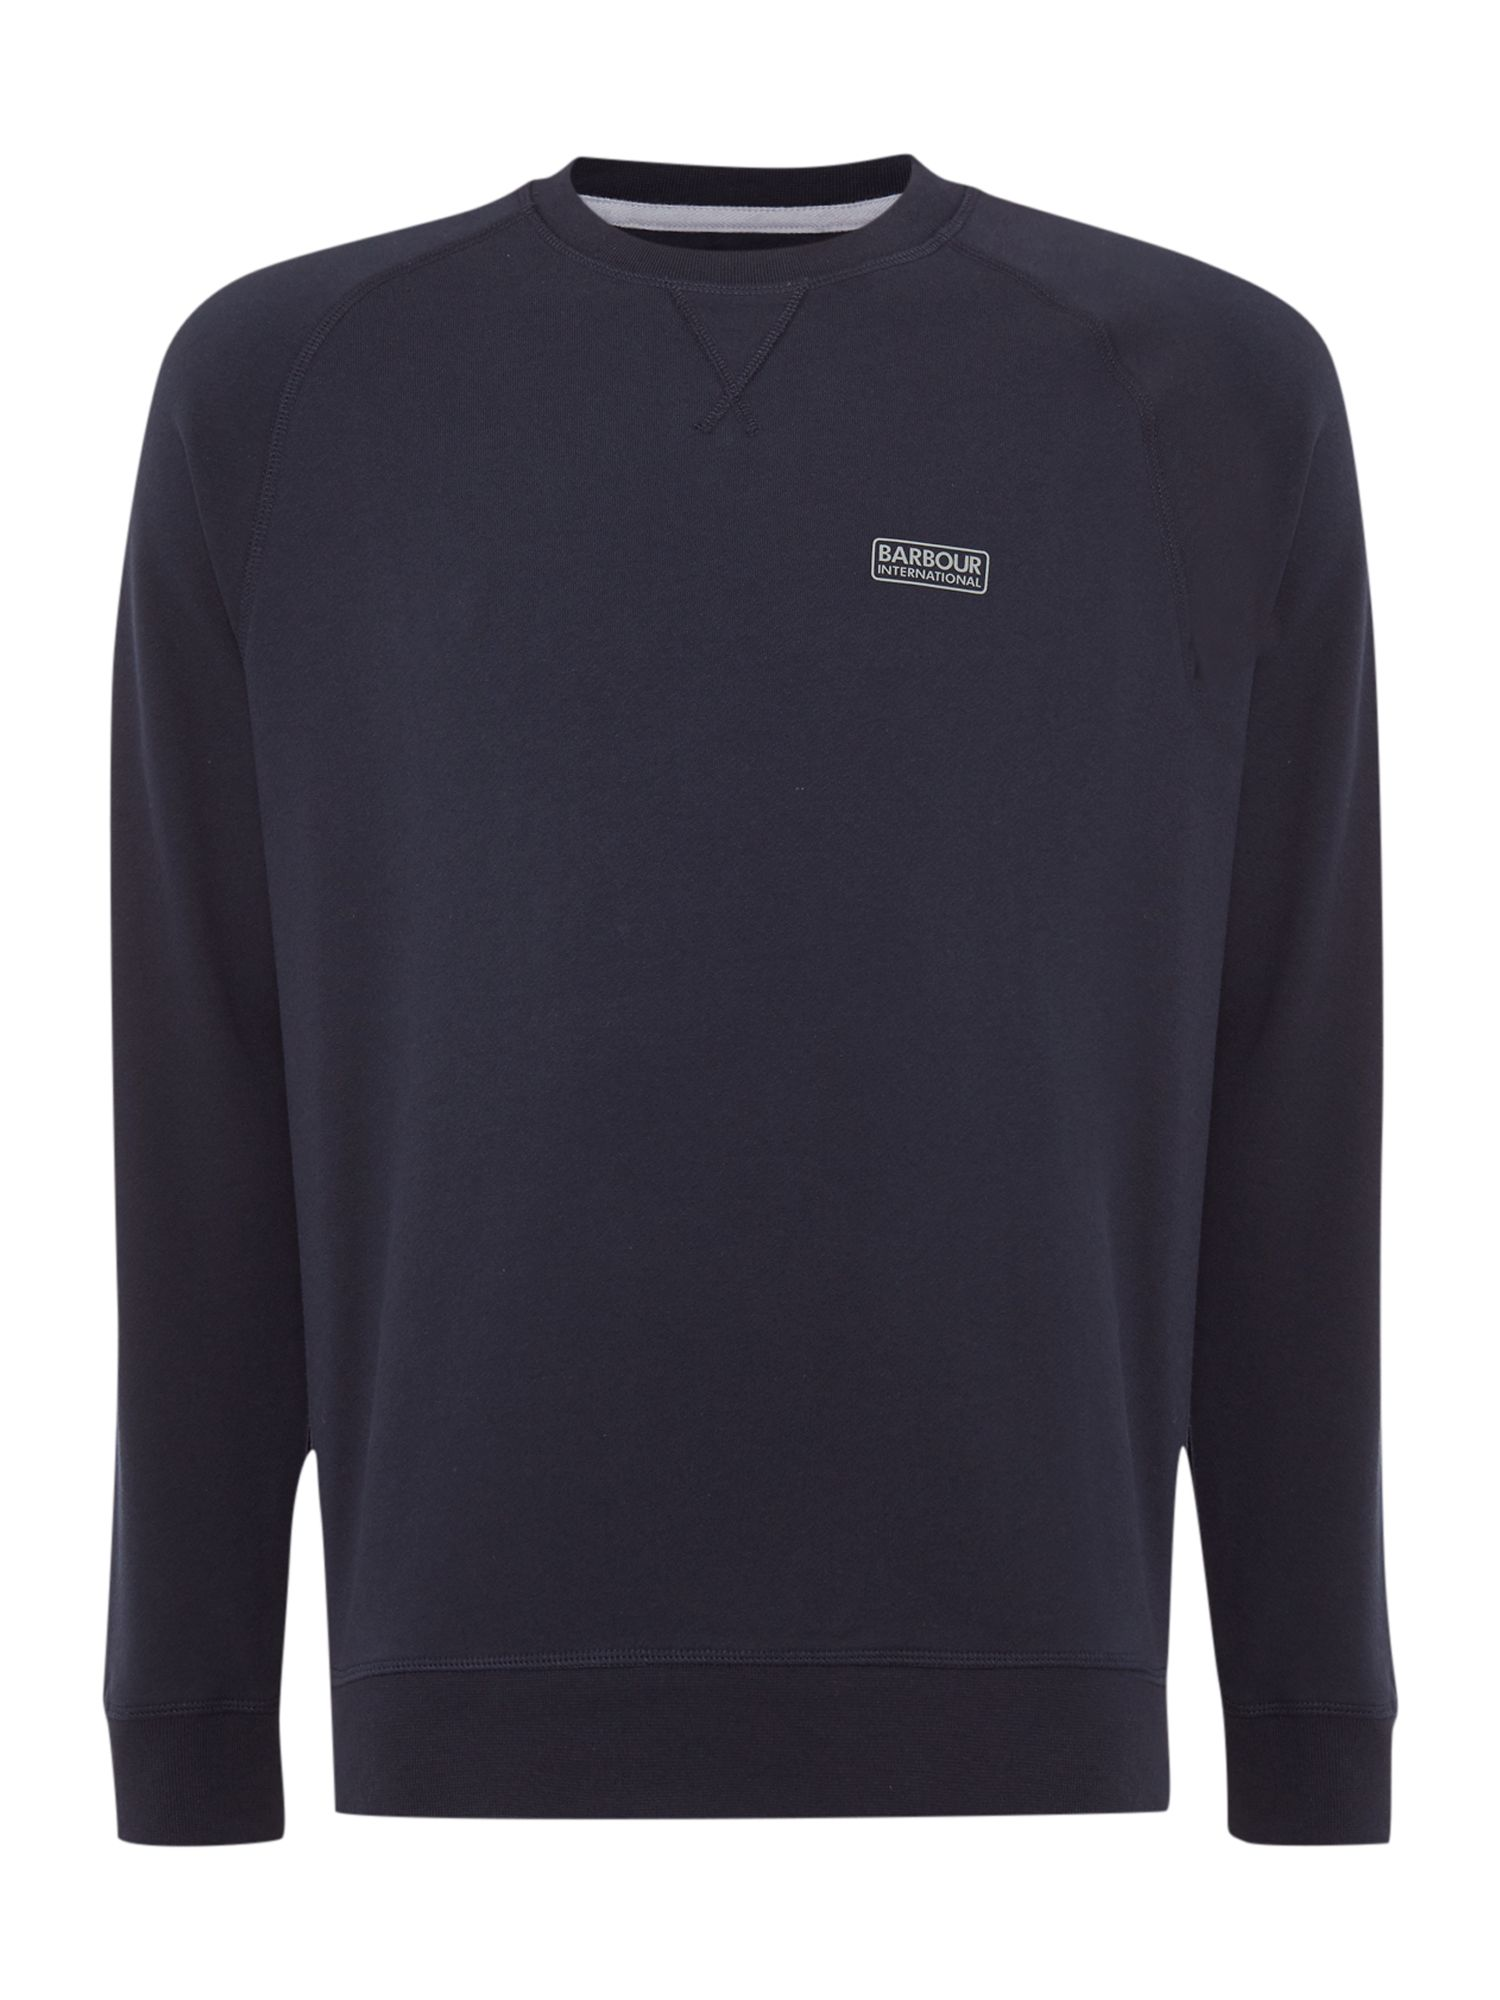 Men's Barbour Logo crew-neck sweatshirt, French Blue